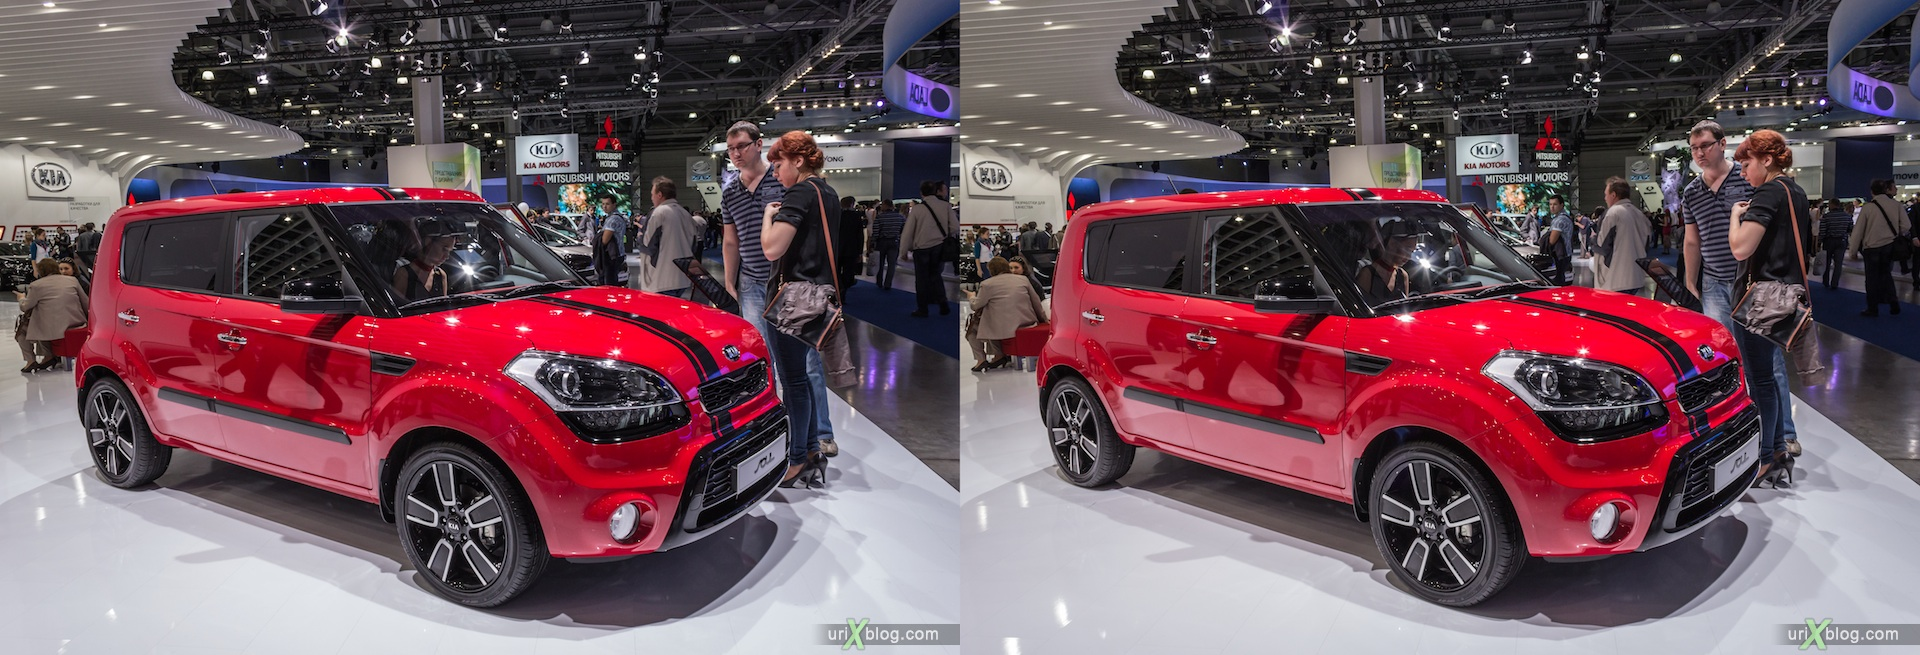 2012, KIA Soul, Moscow International Automobile Salon, auto show, 3D, stereo pair, cross-eyed, crossview